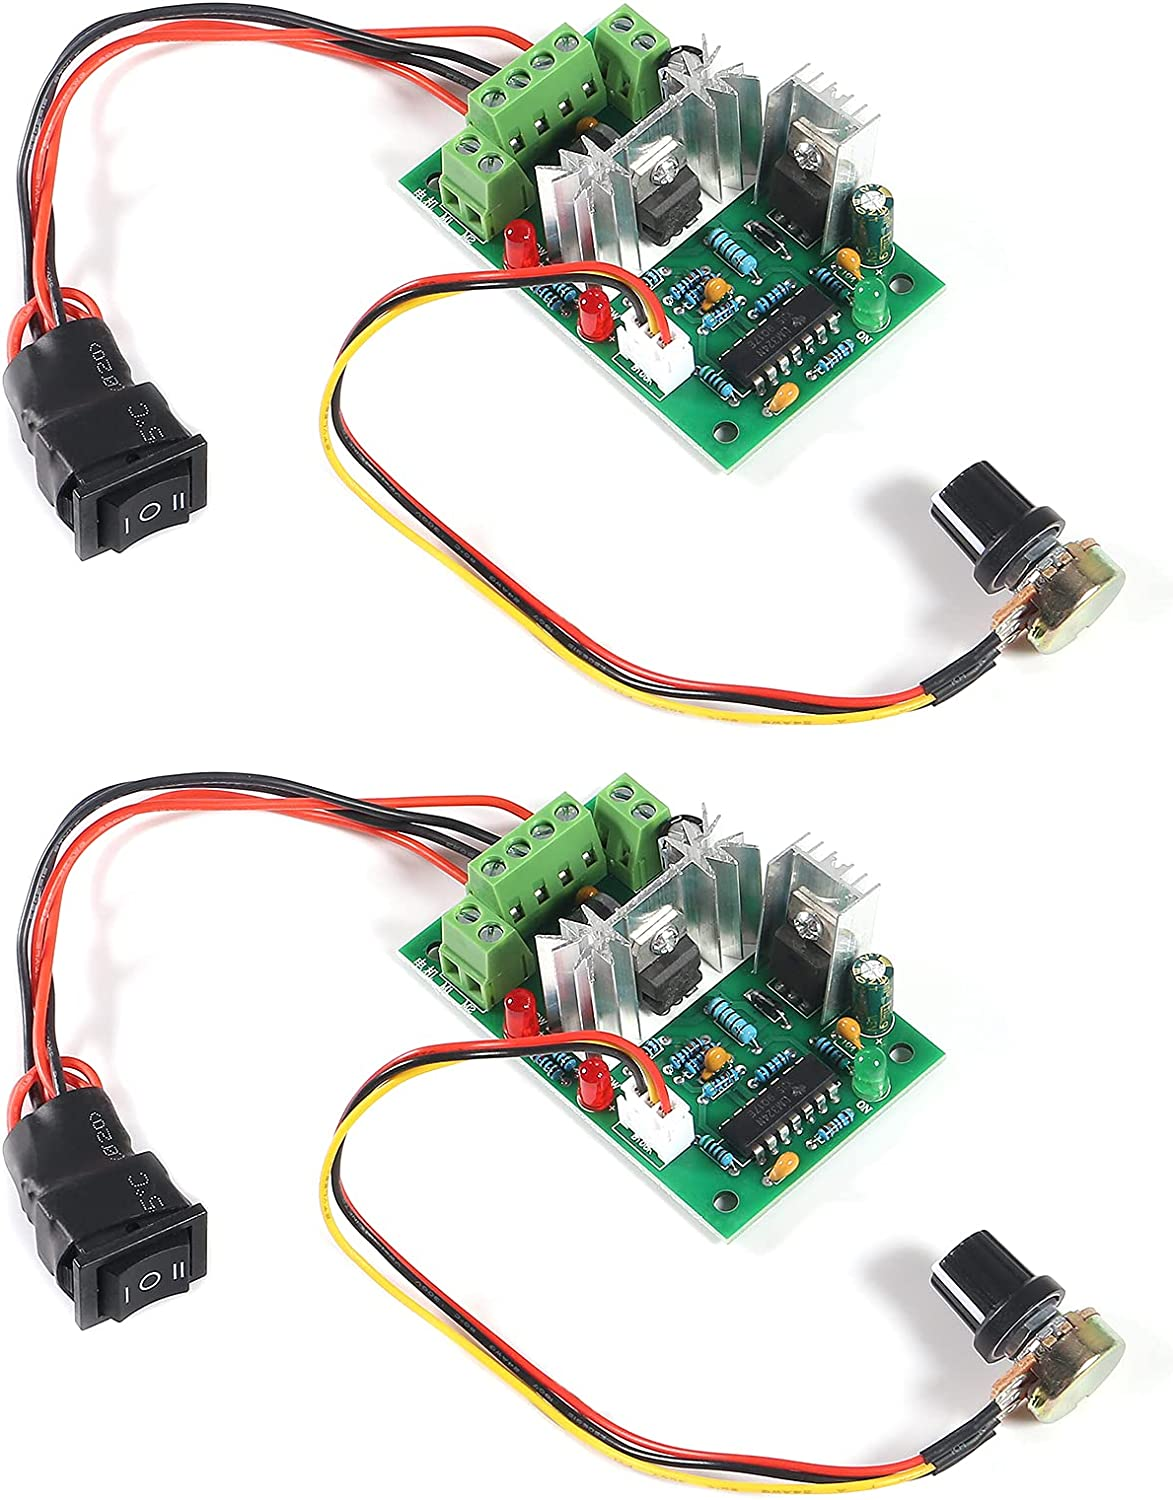 MELIFE 2 Pack Adjustable 120W Ranking Detroit Mall TOP19 DC Controller 10V Speed Motor PWM